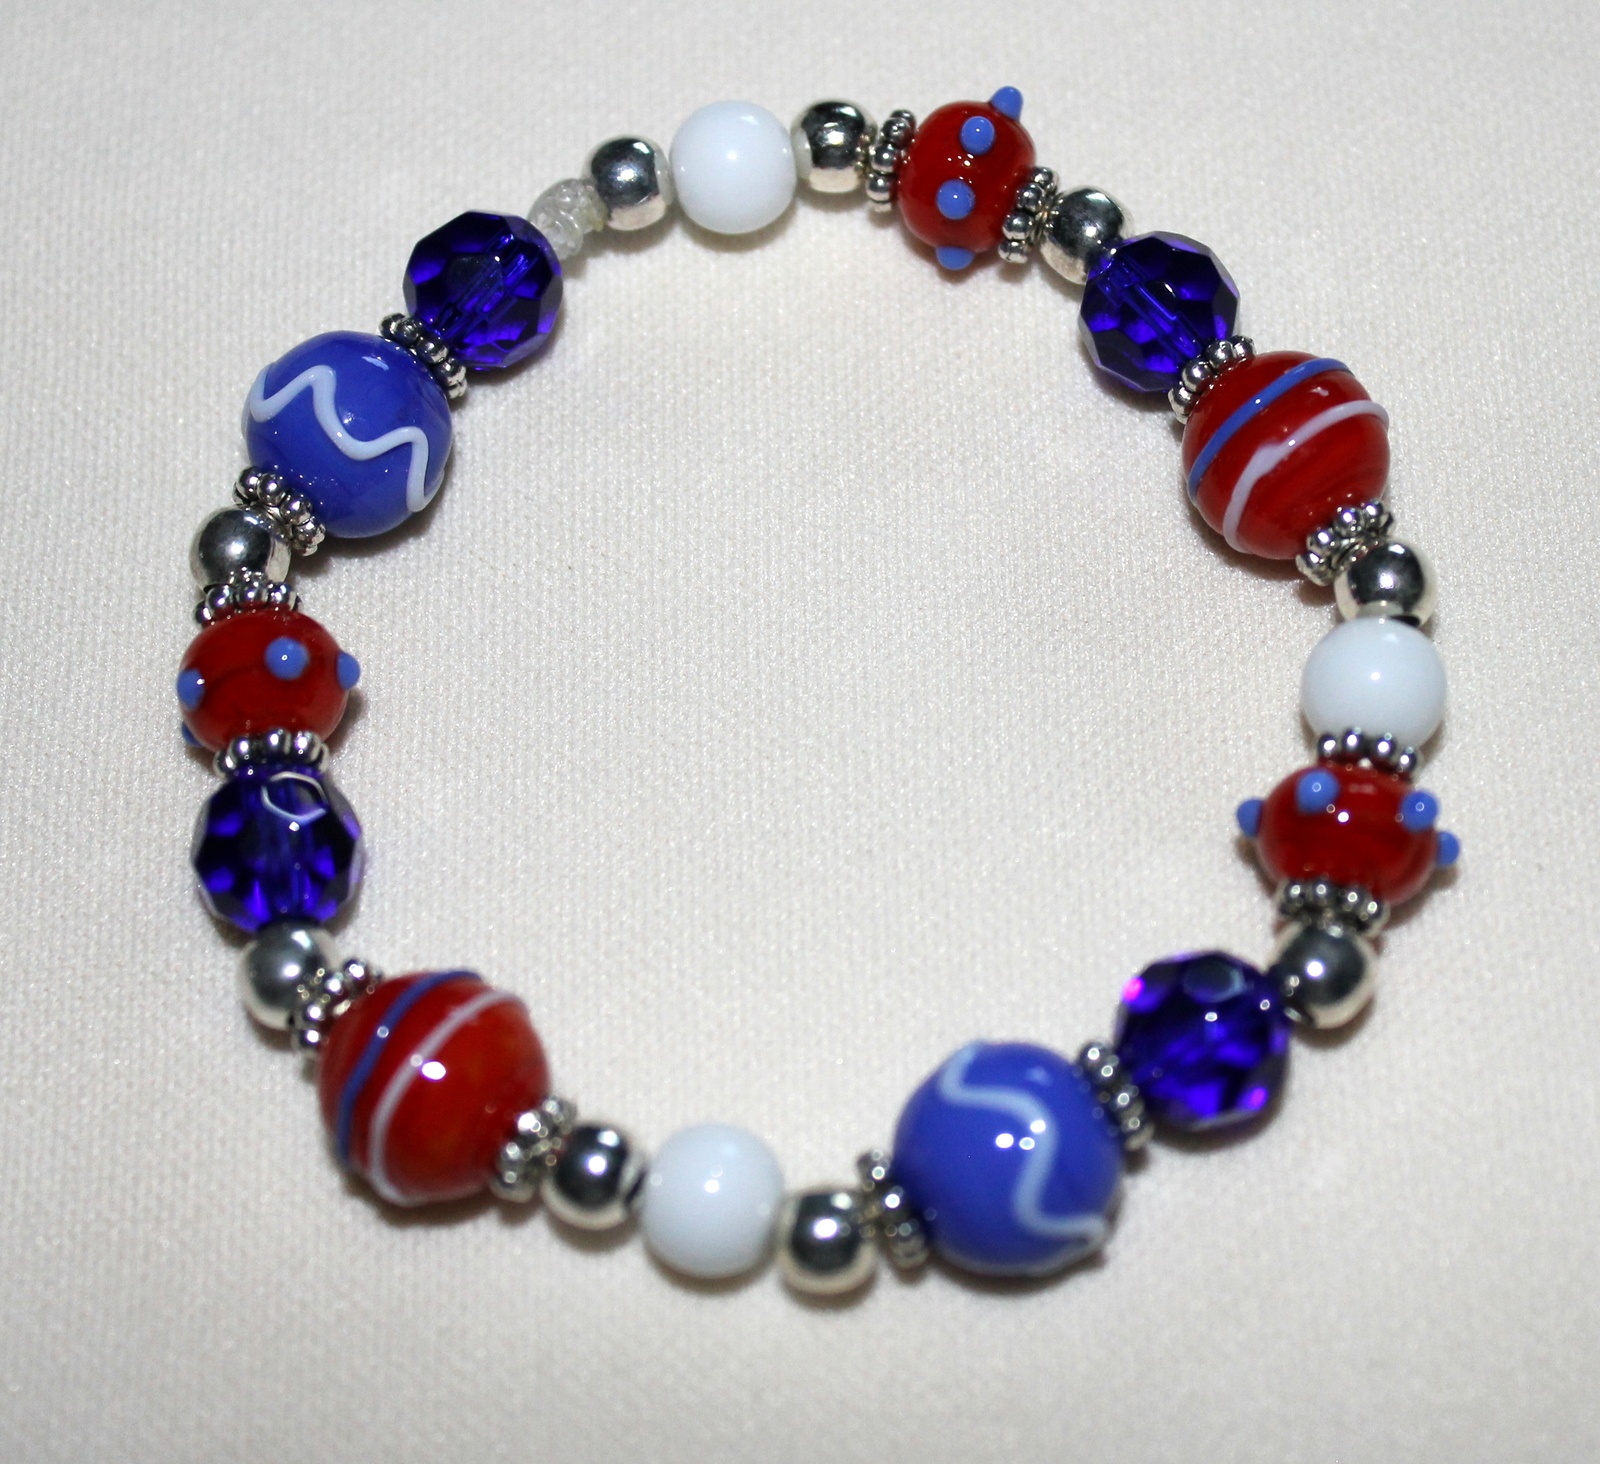 Patriotic Red, White and Blue Lampwork Beaded Bracelet